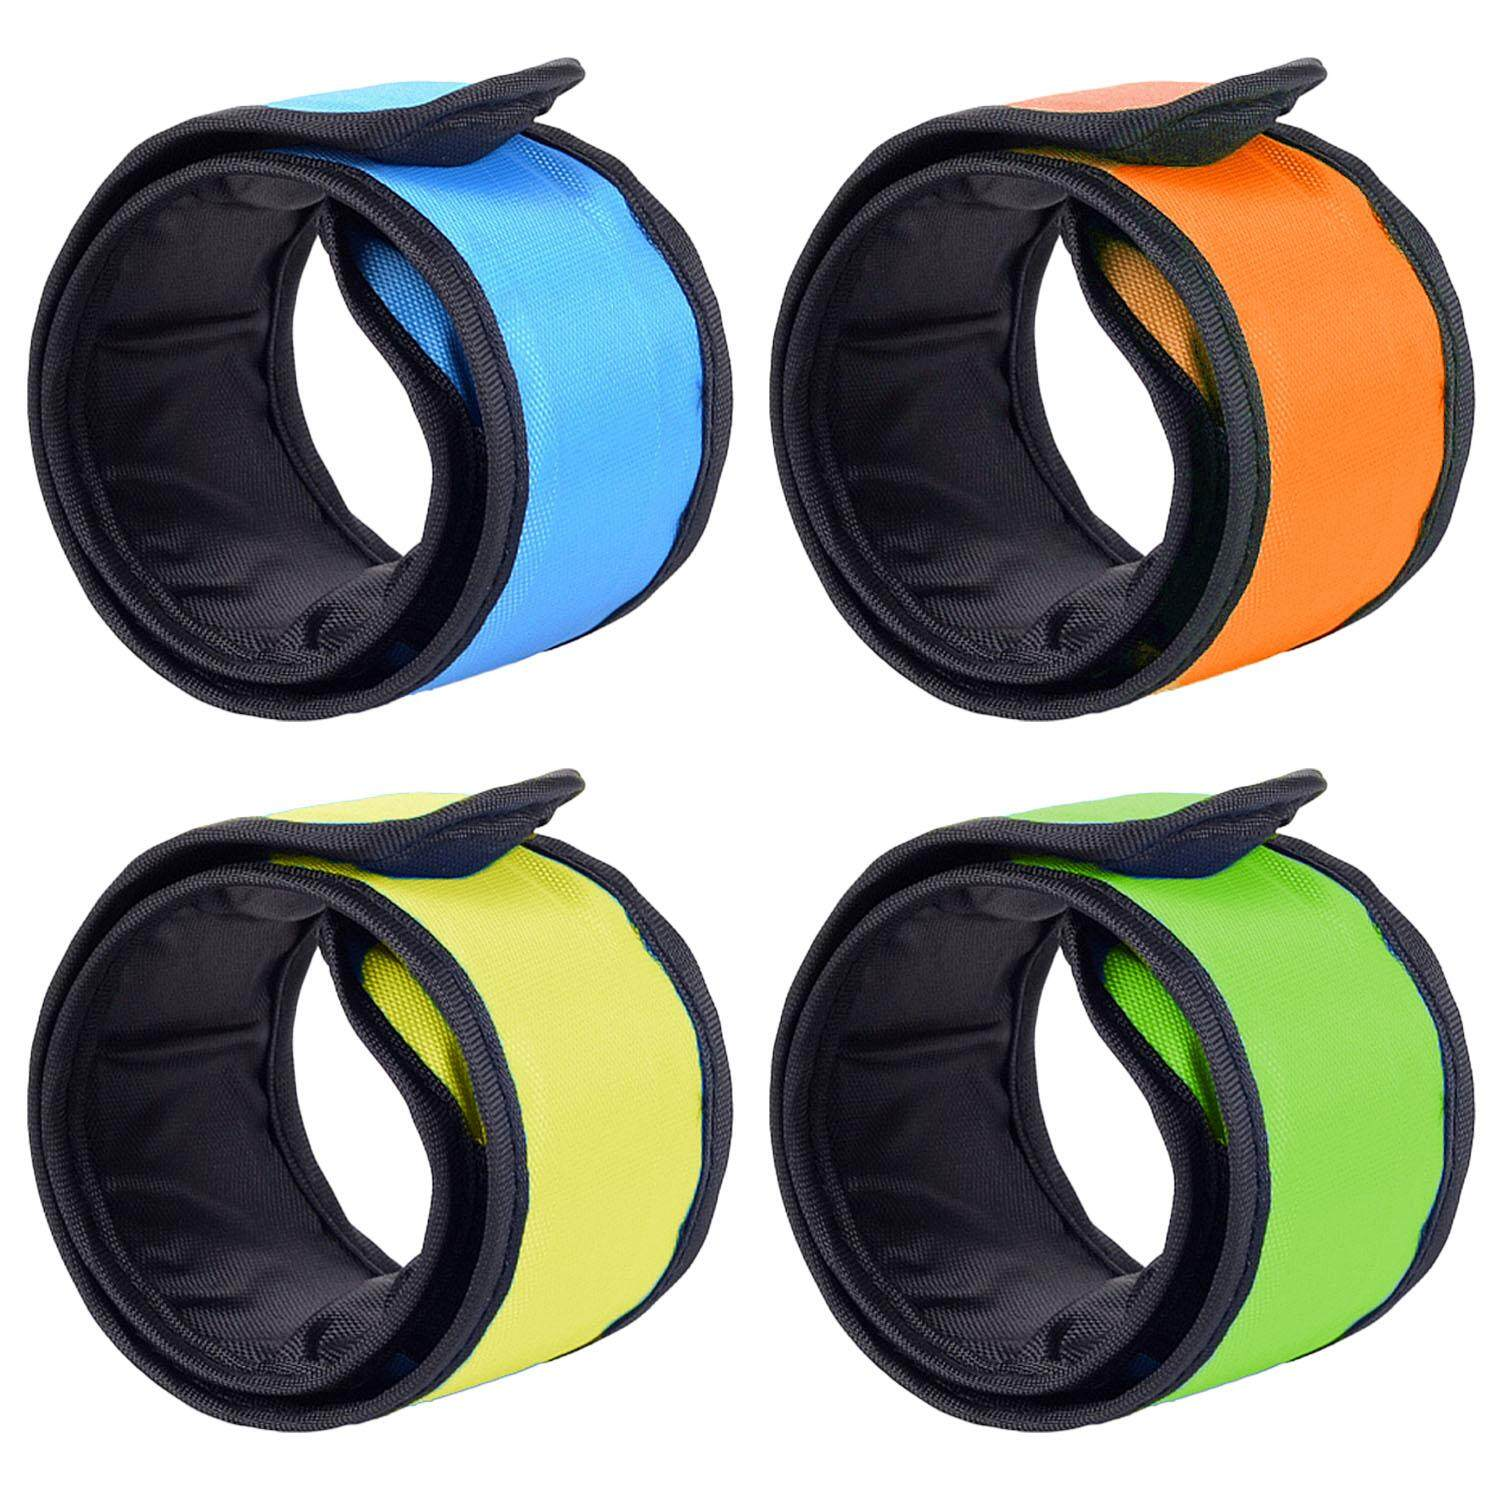 4pcs Led Glow Light Up Band Slap Night Safety Bracelet Wristband For Cycling Jogging Walking Running Concert Camping Outdoor Sports By Duha.